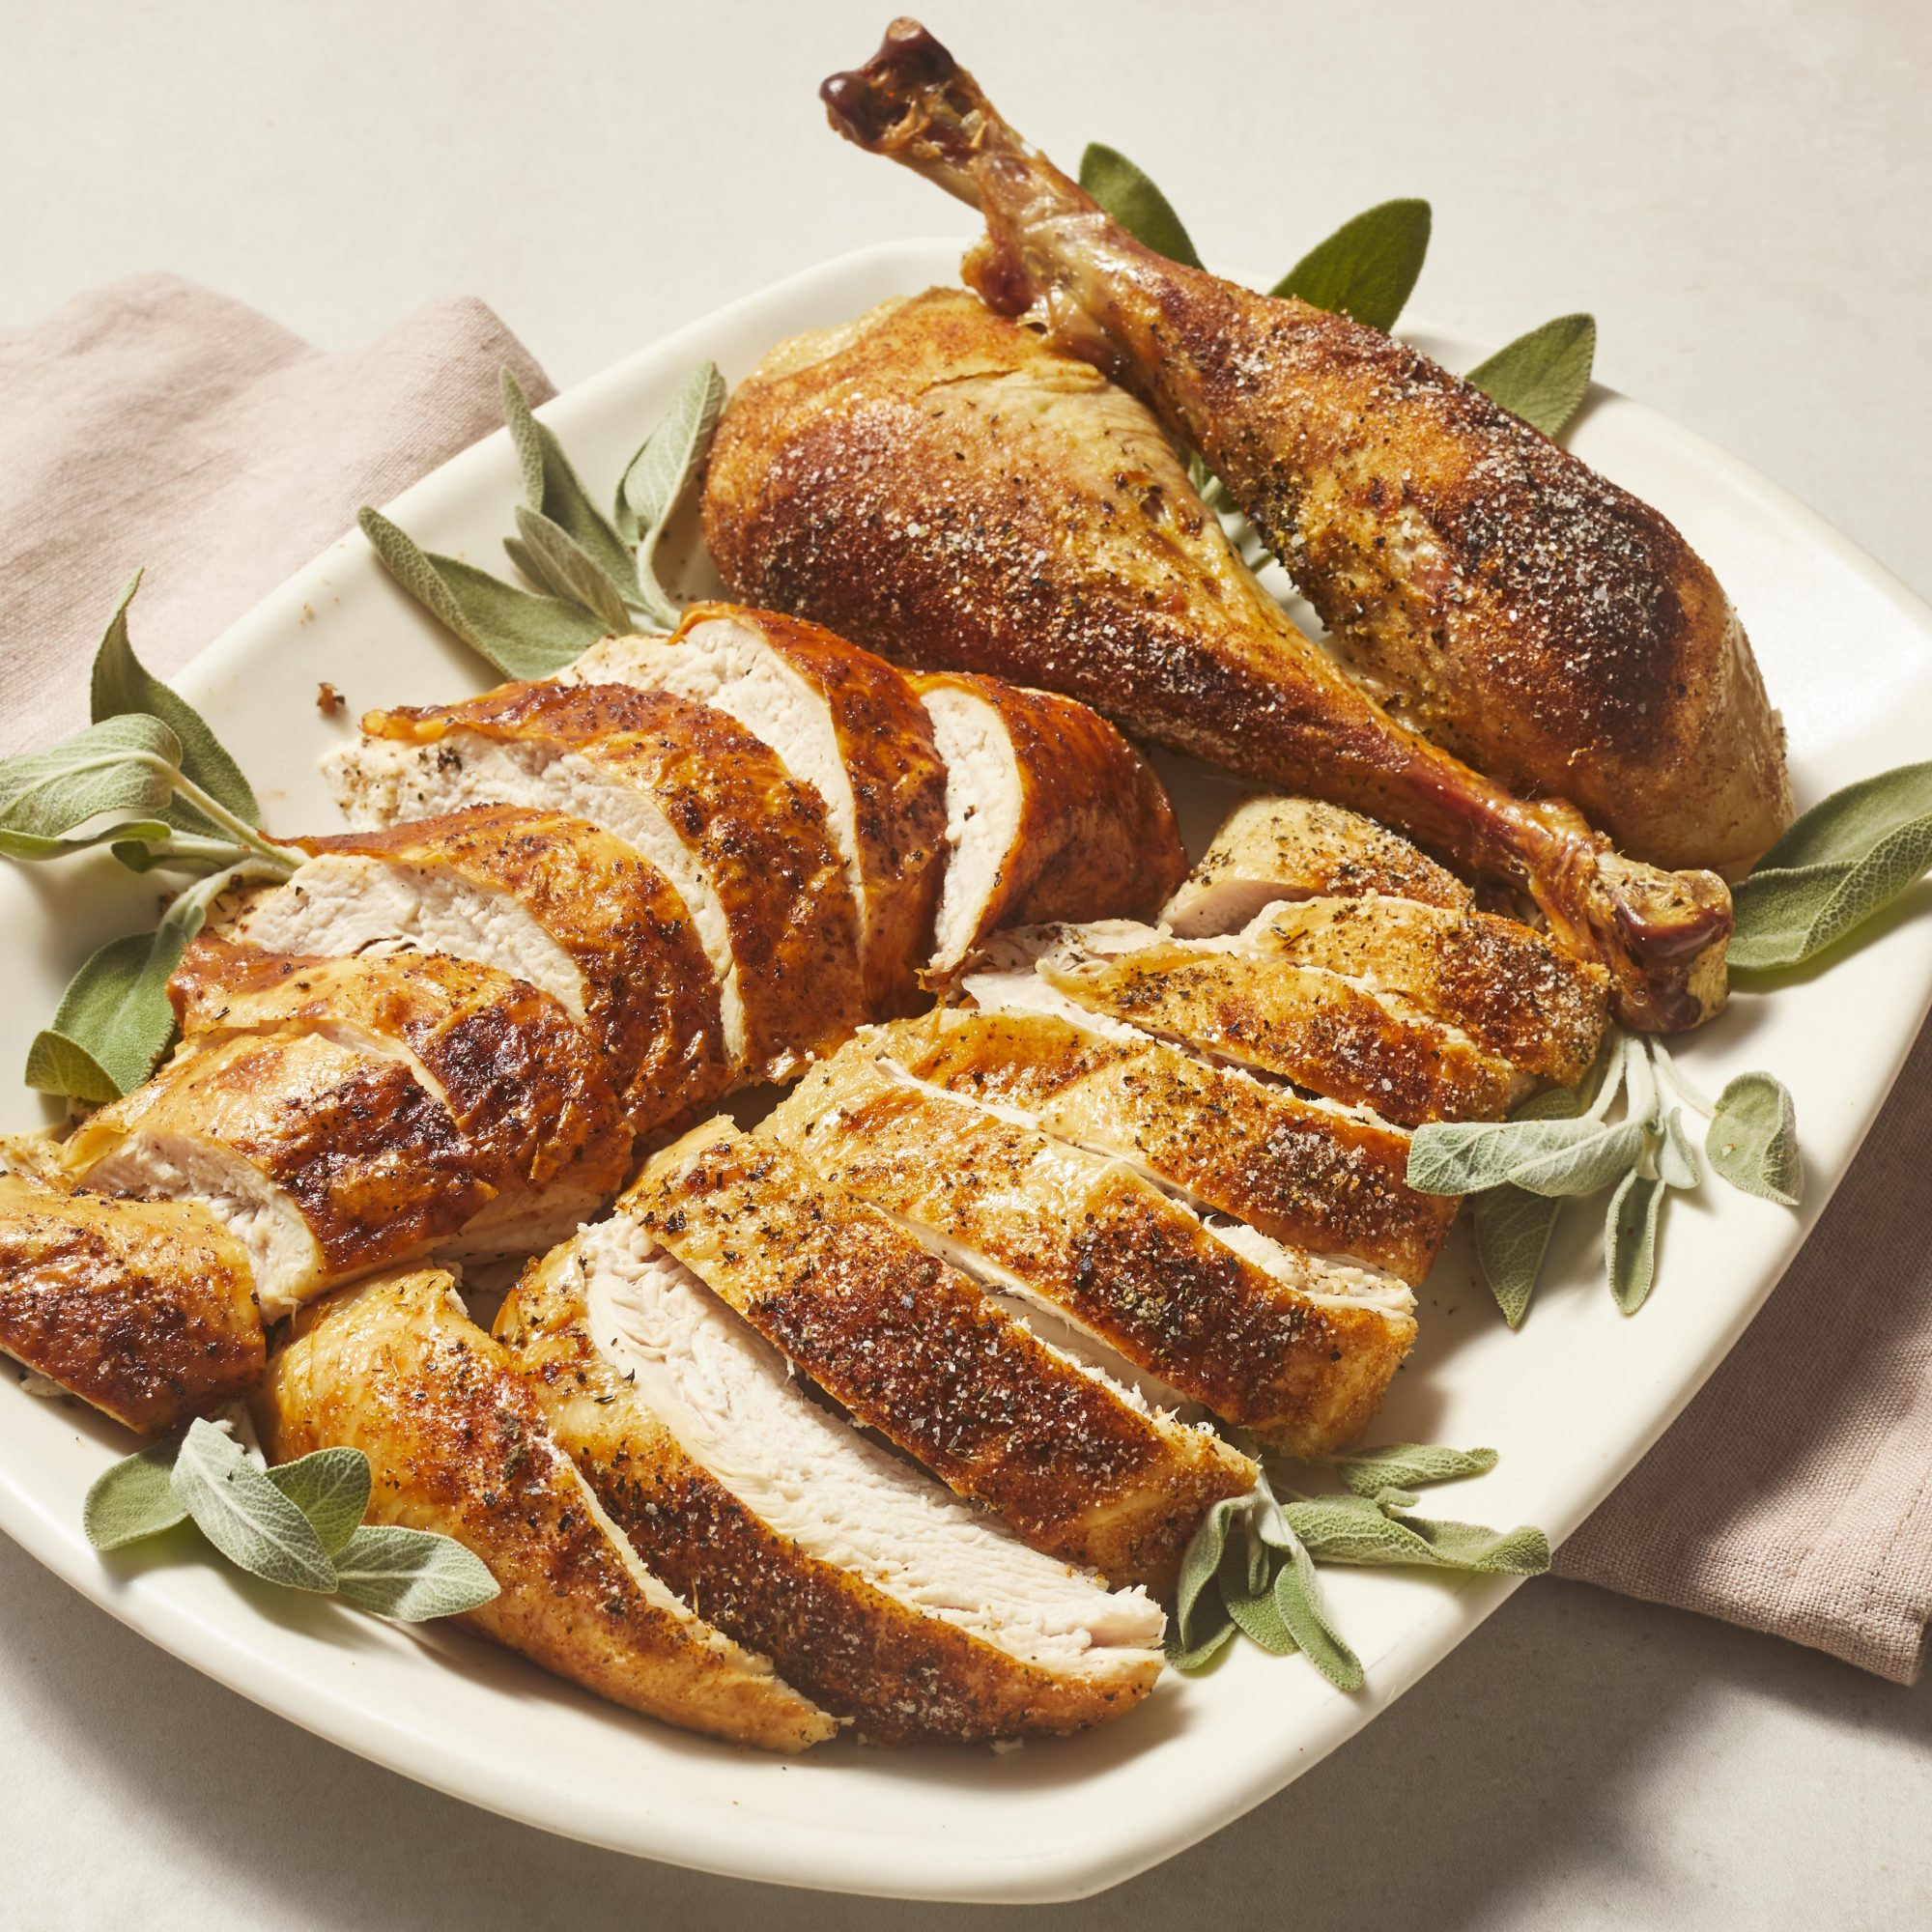 Platter of carved turkey with rosemary sprigs